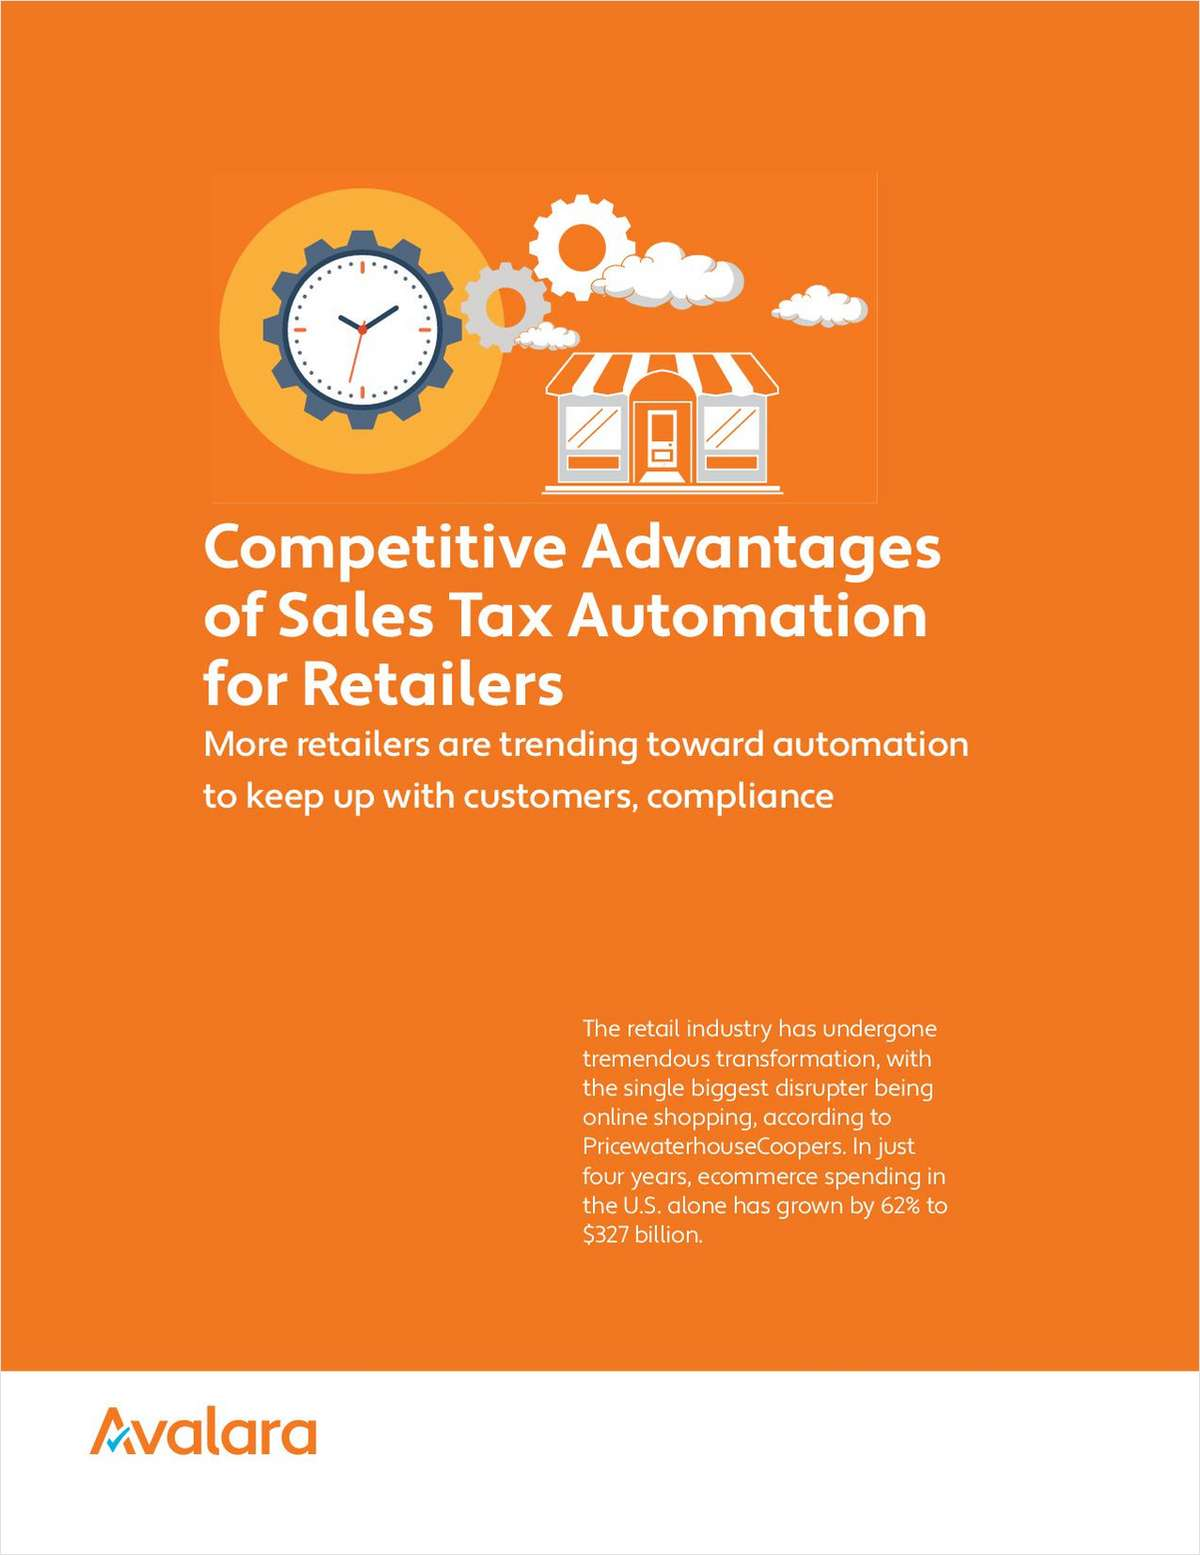 Competitive Advantages of Sales Tax Automation for Retailers